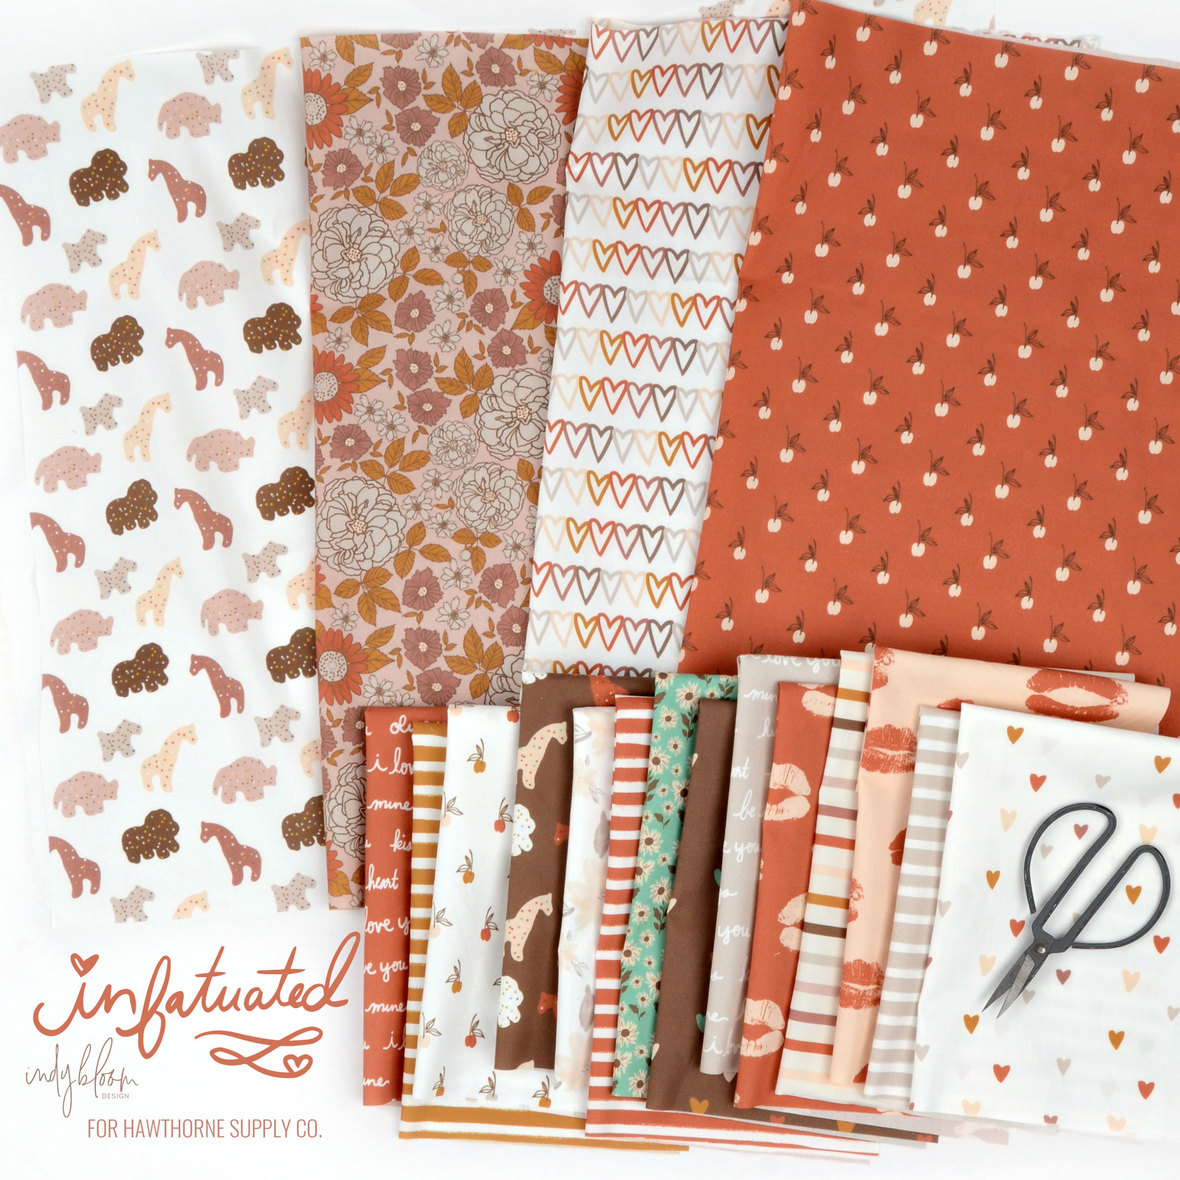 Infatuated-Valentines-Day-fabric-Indy-Bloom-for-Hawthorne-Supply-Co